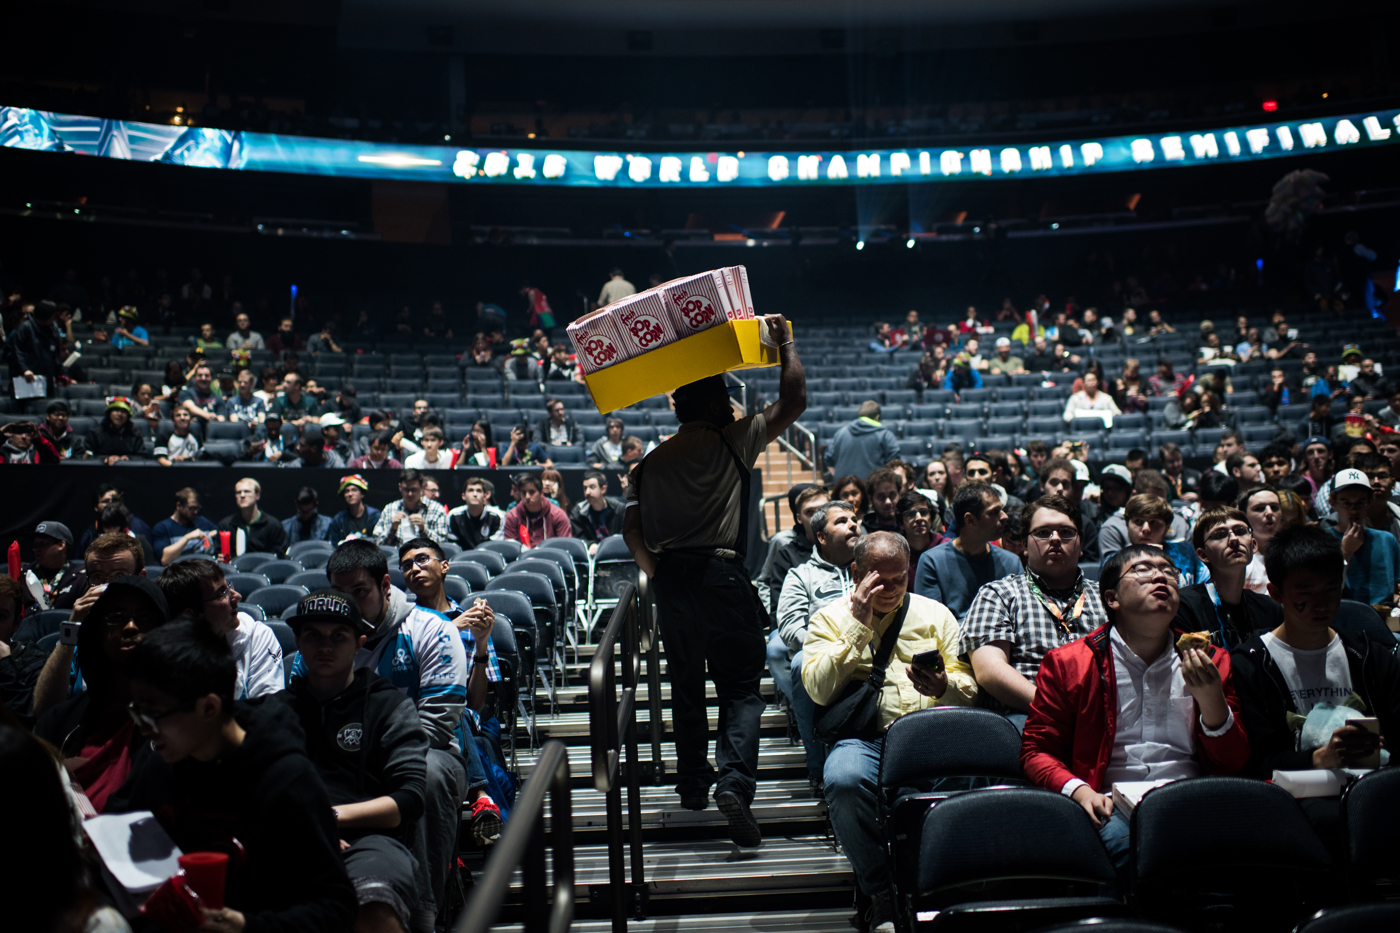 A vendor at Madison Square Garden sells popcorn prior to the Saturday match of the League of Legends World Championship semifinals.